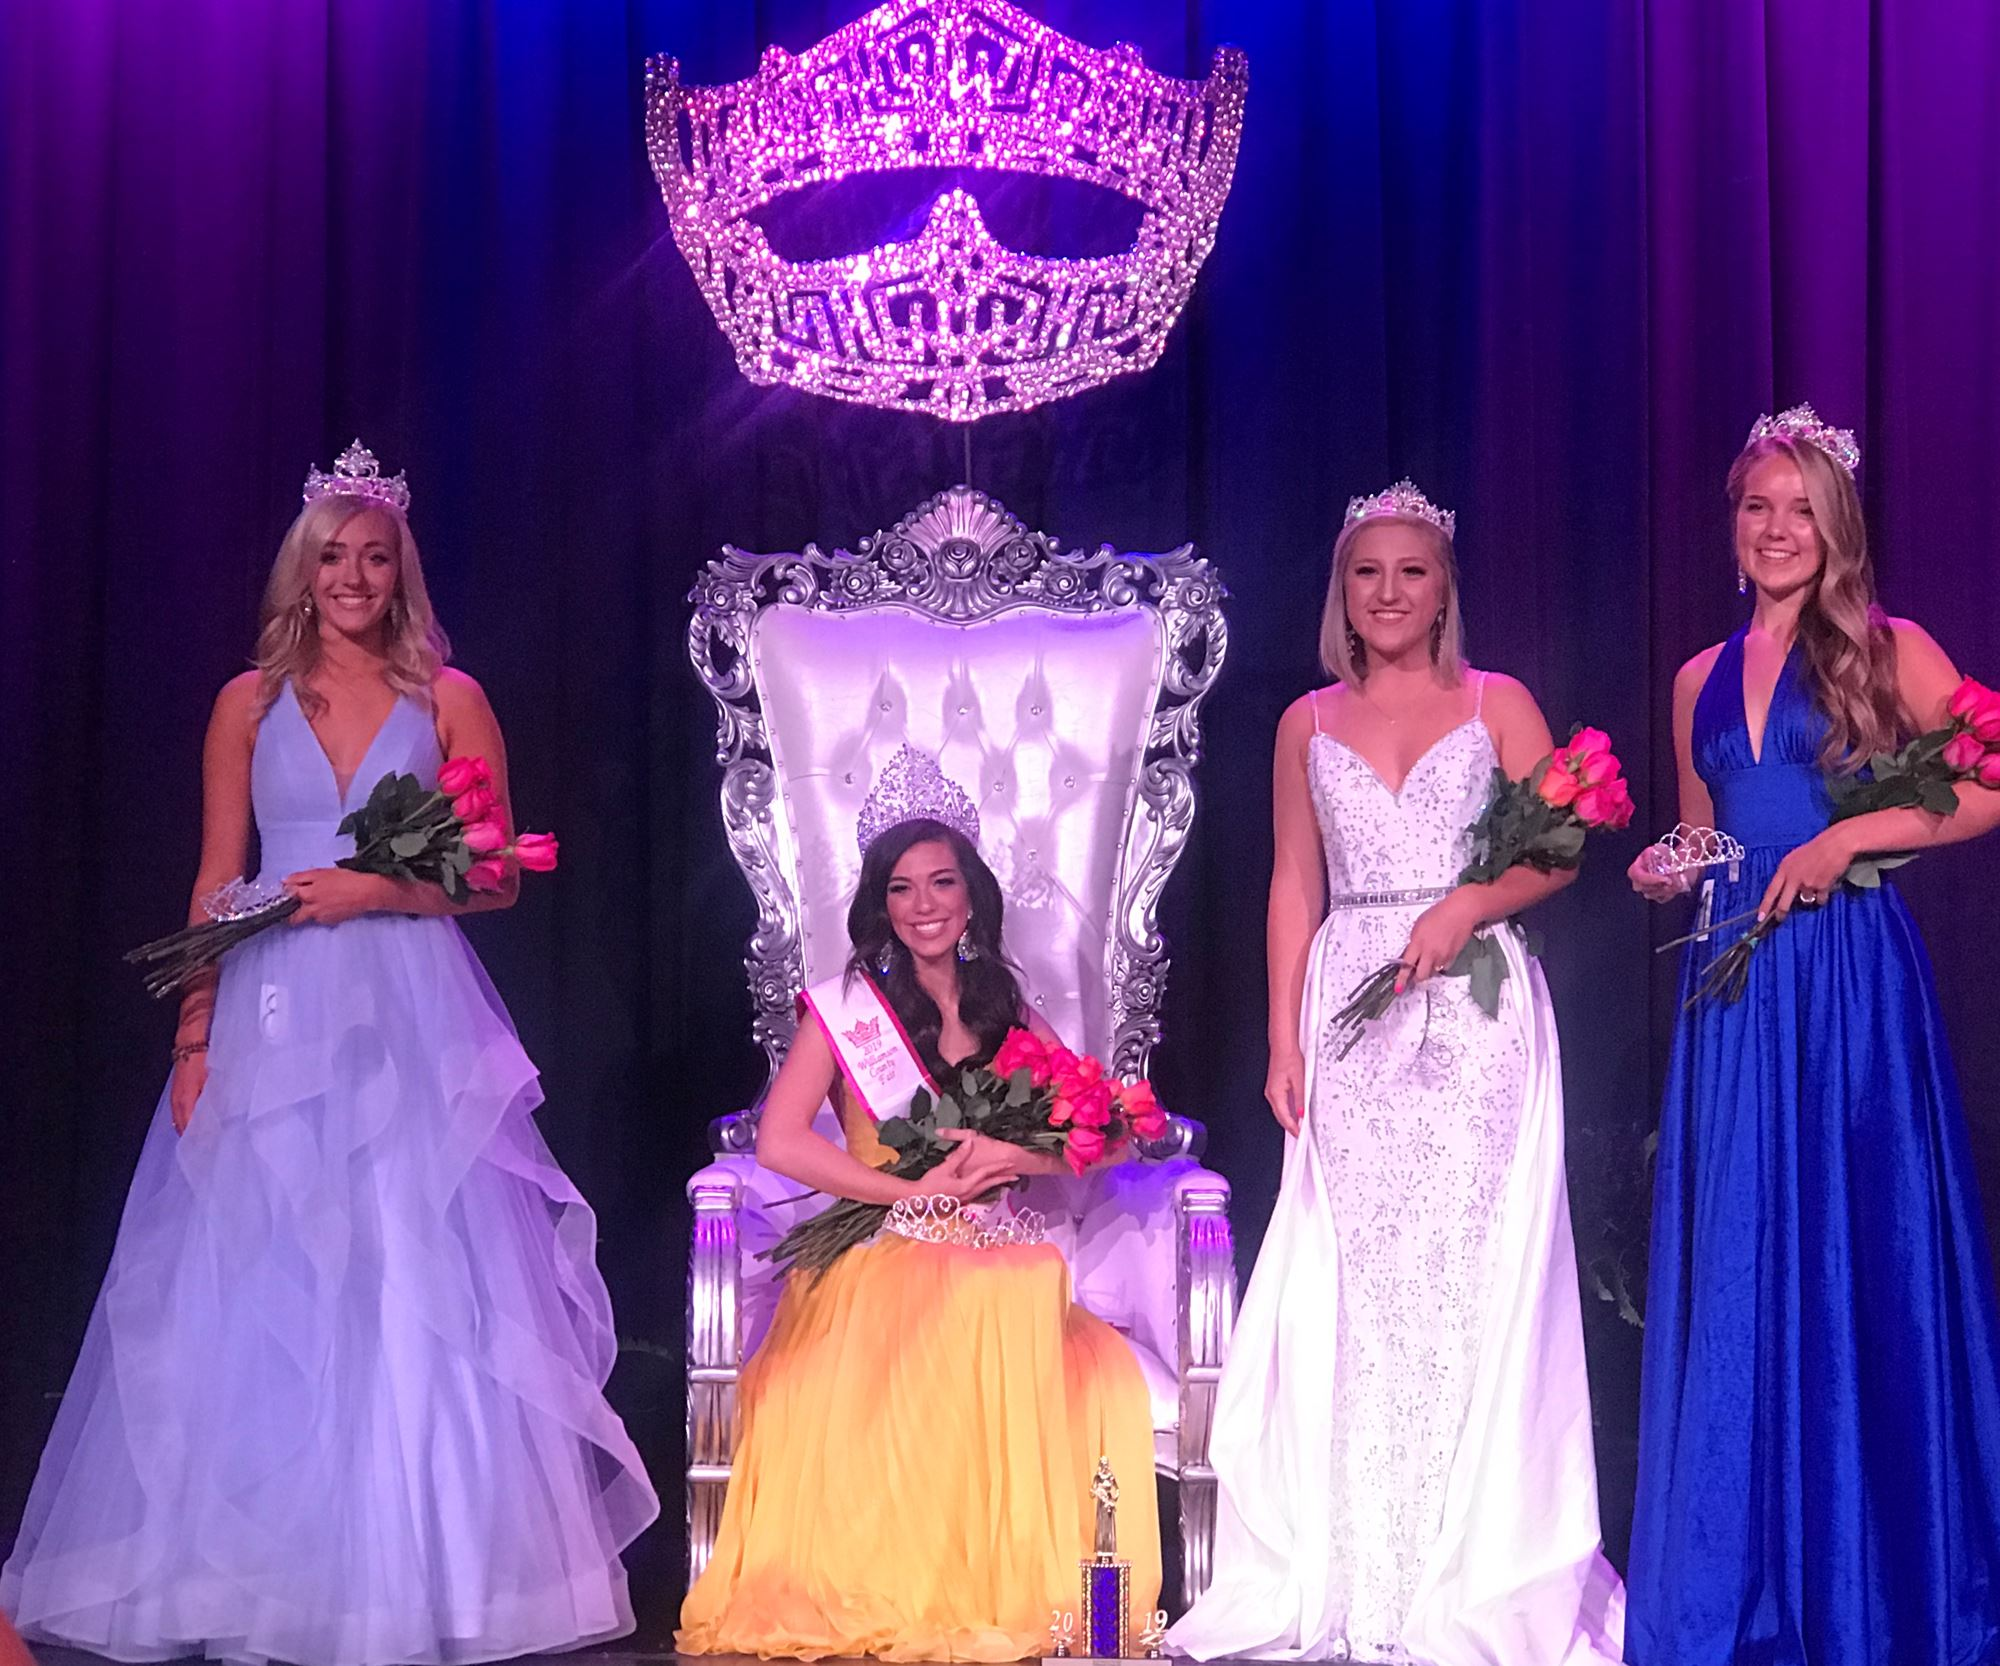 2019 Fairest of the Fair Carsyn Hughes and her court, with a link to enter Pageants.